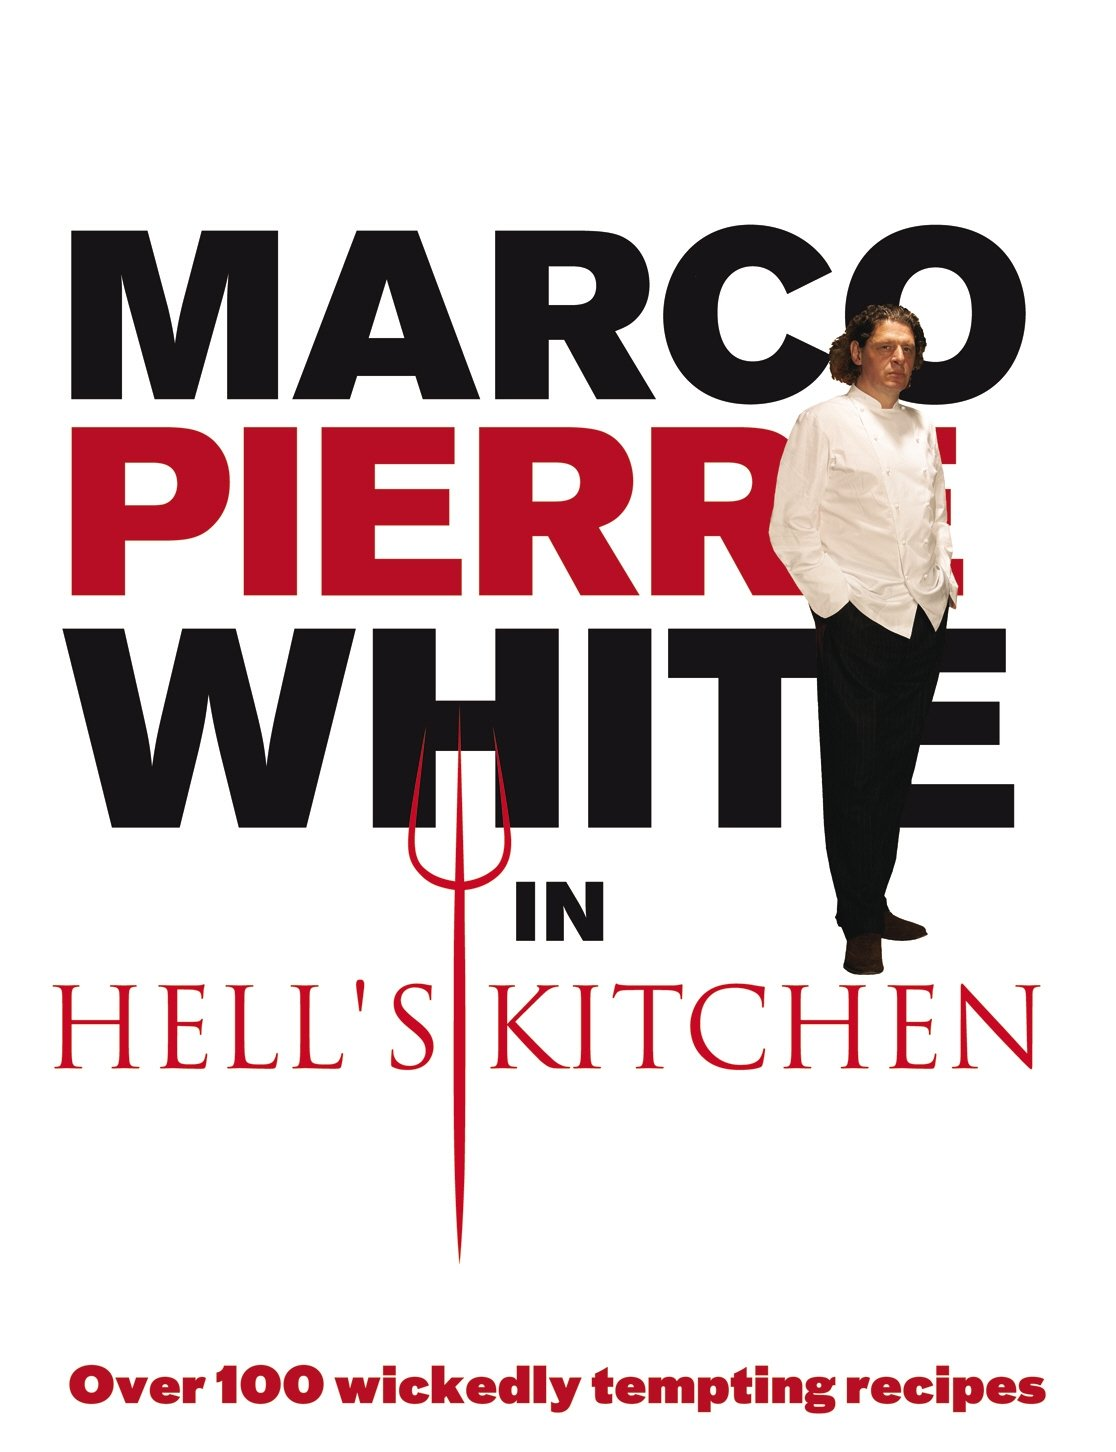 Marco Pierre White in Hell's Kitchen: Amazon.co.uk: Marco Pierre White:  9780091923167: Books